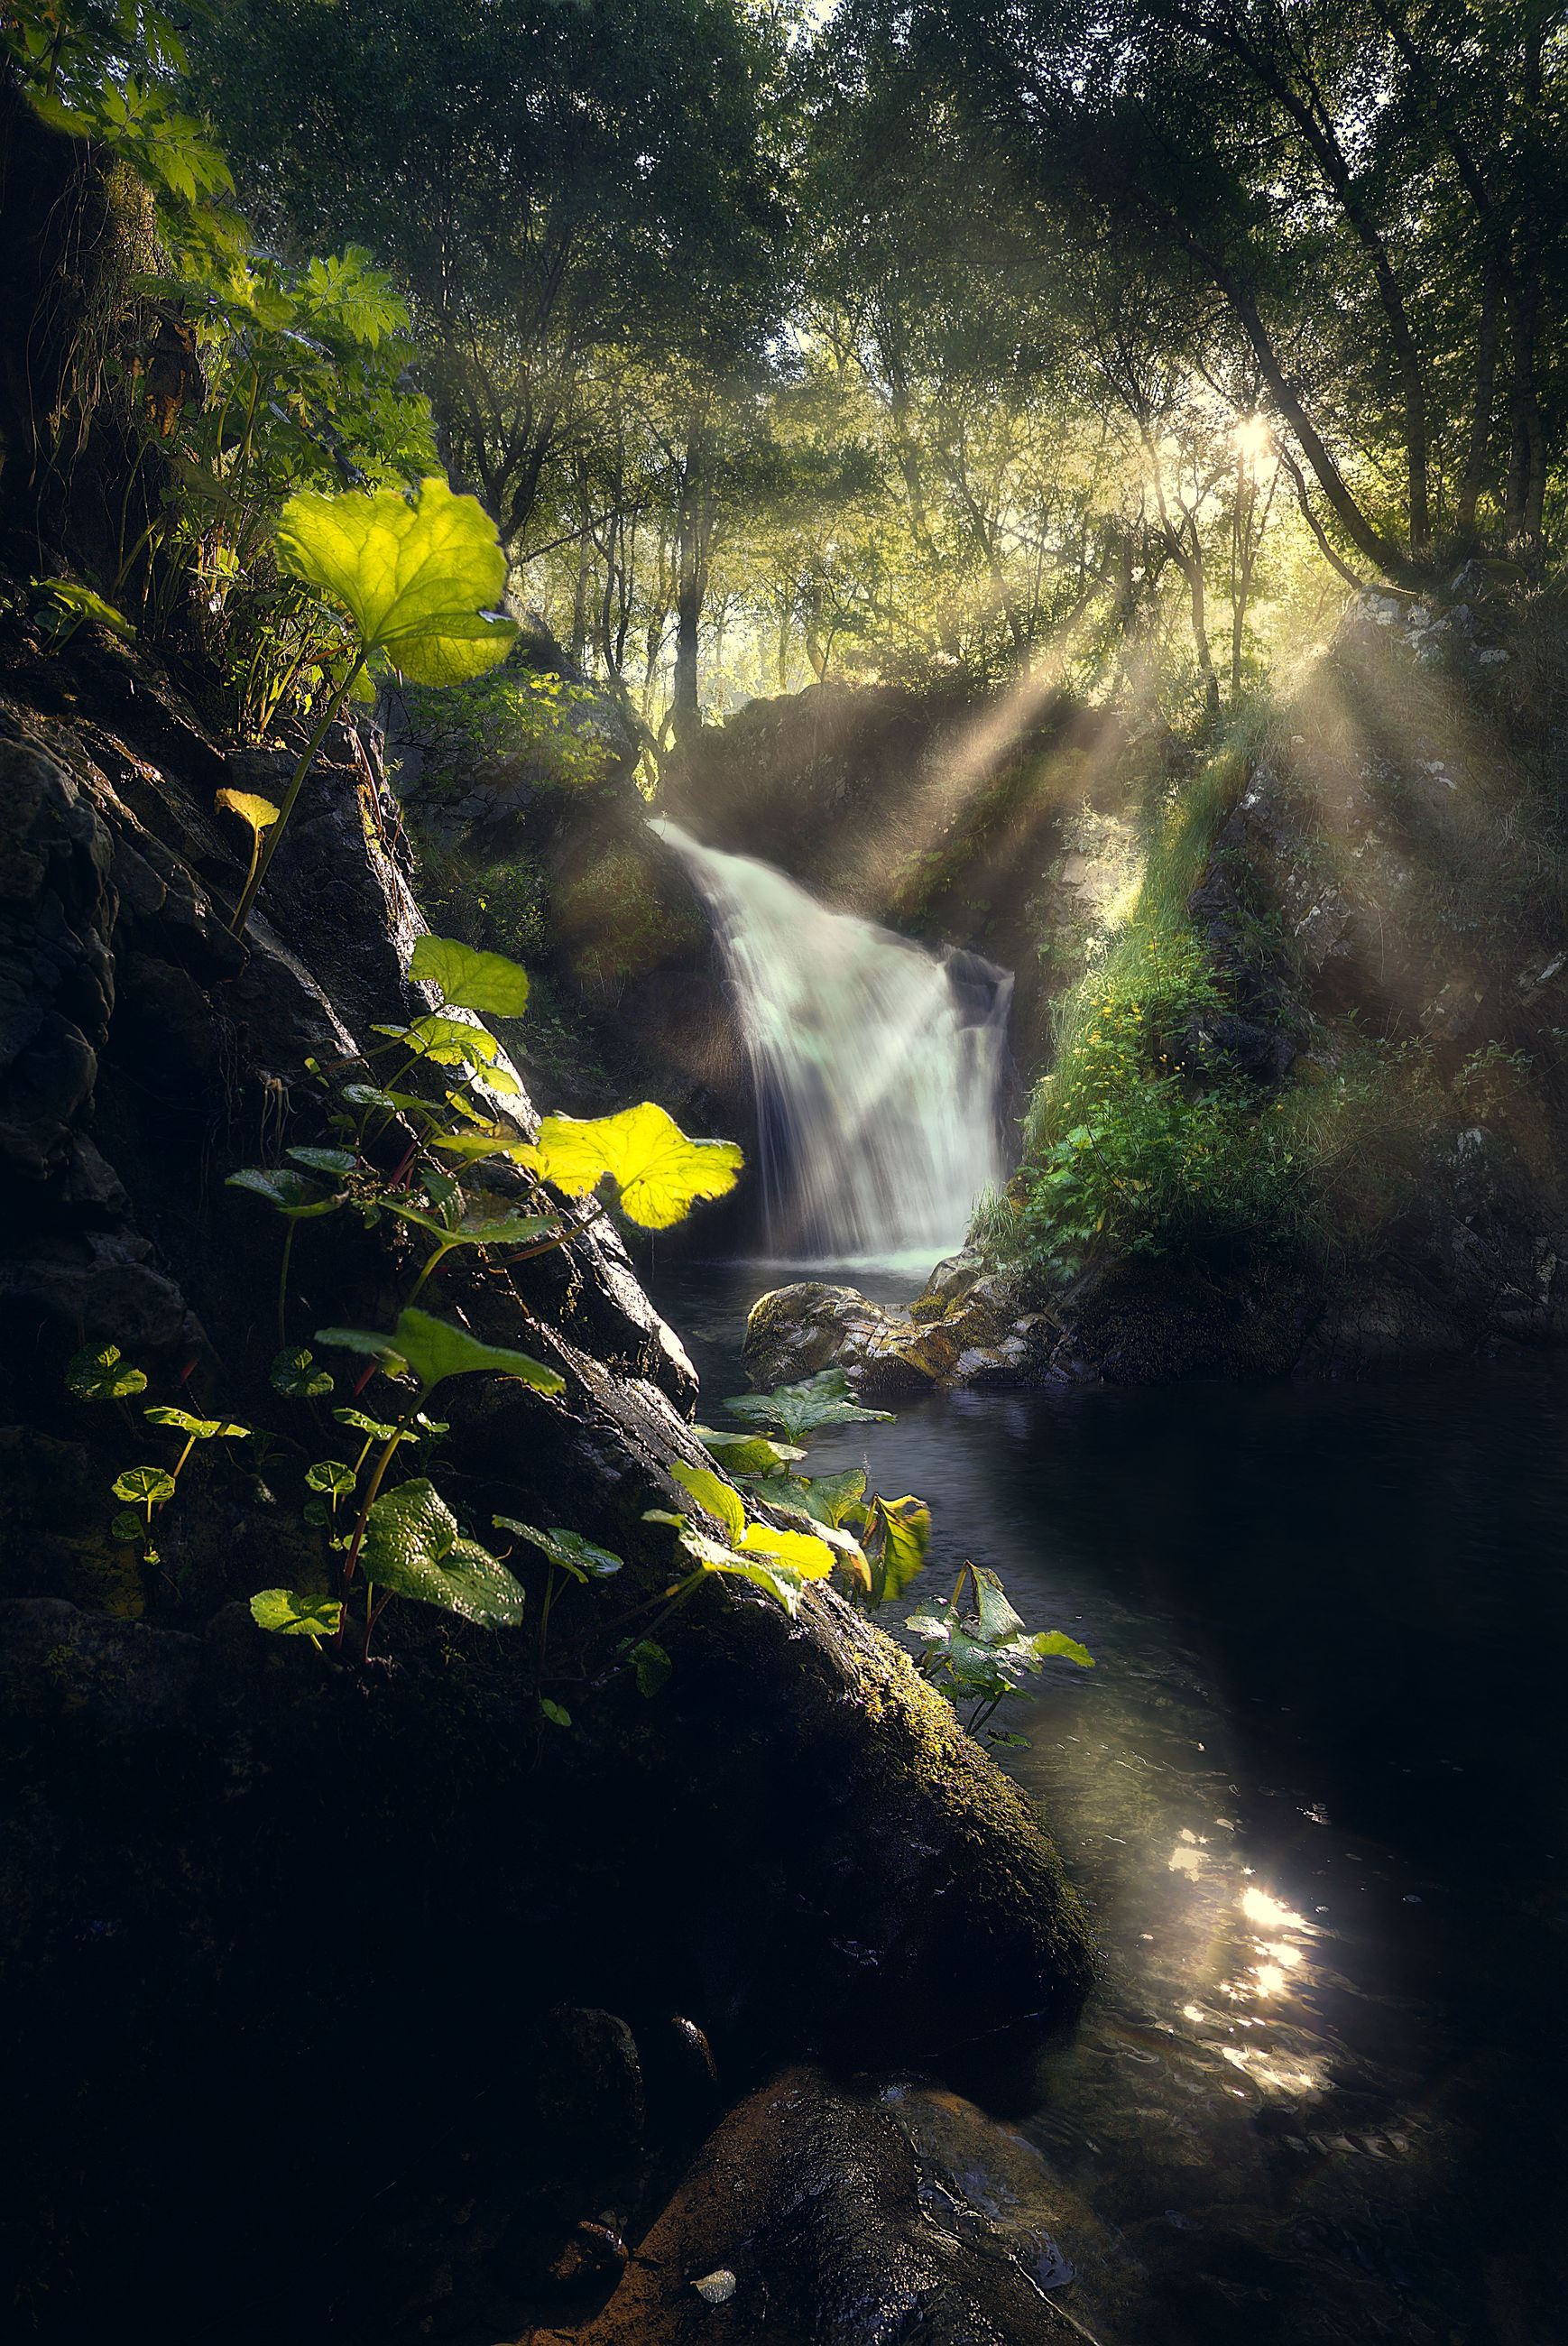 SCENIC VIEW OF WATERFALL ON ROCKS IN FOREST